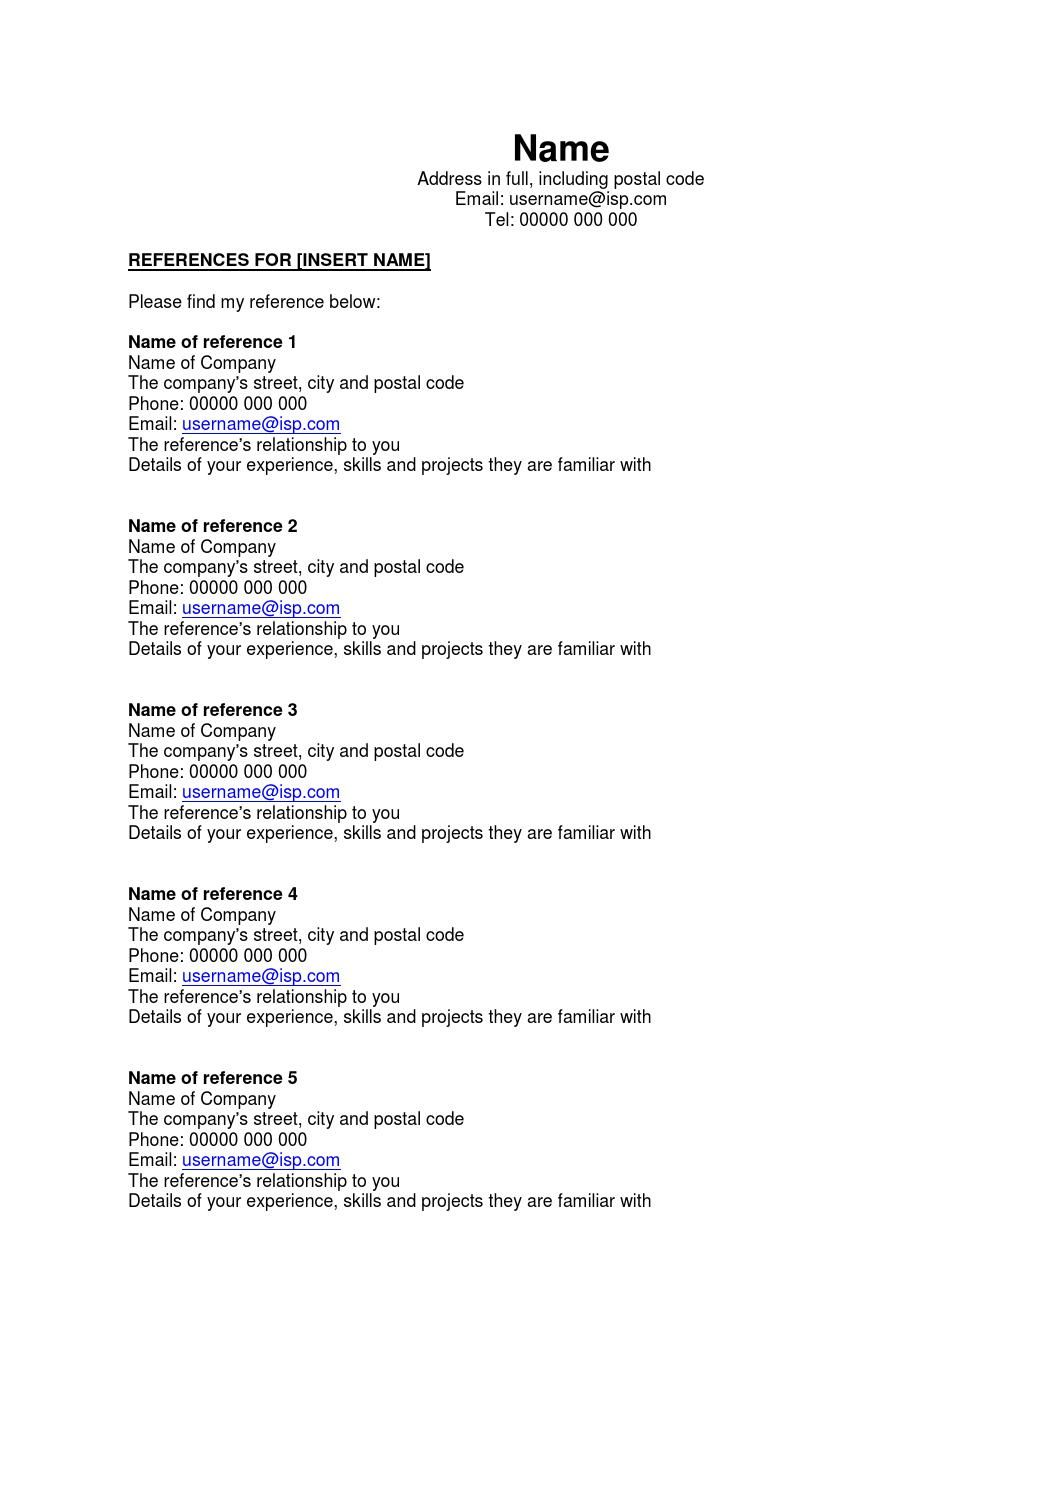 Job Reference sheet template Job images, Reference page